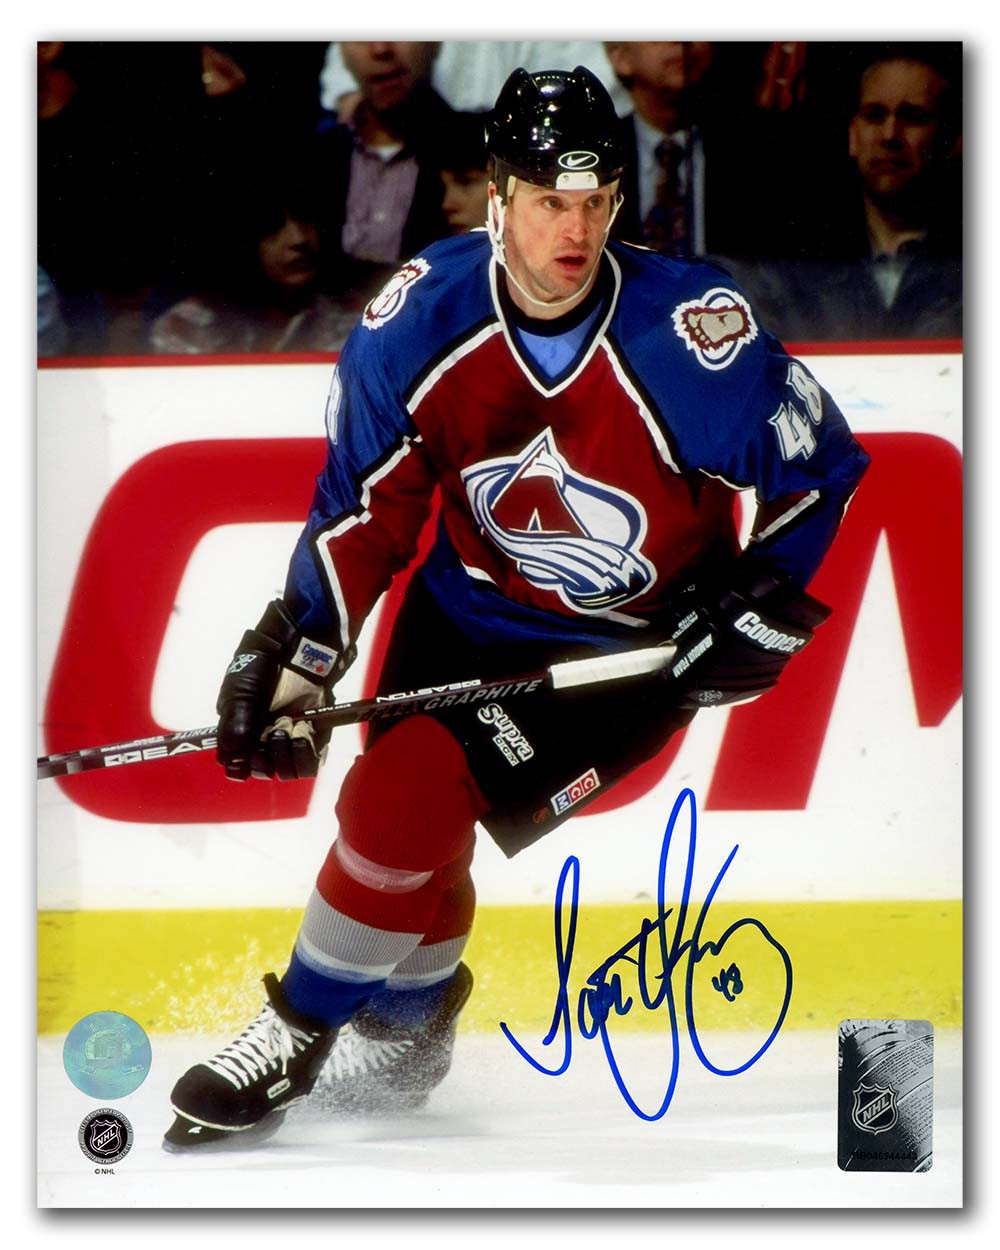 b0c35834c Scott Young Colorado Avalanche Autographed Signed 8x10 Photo ...